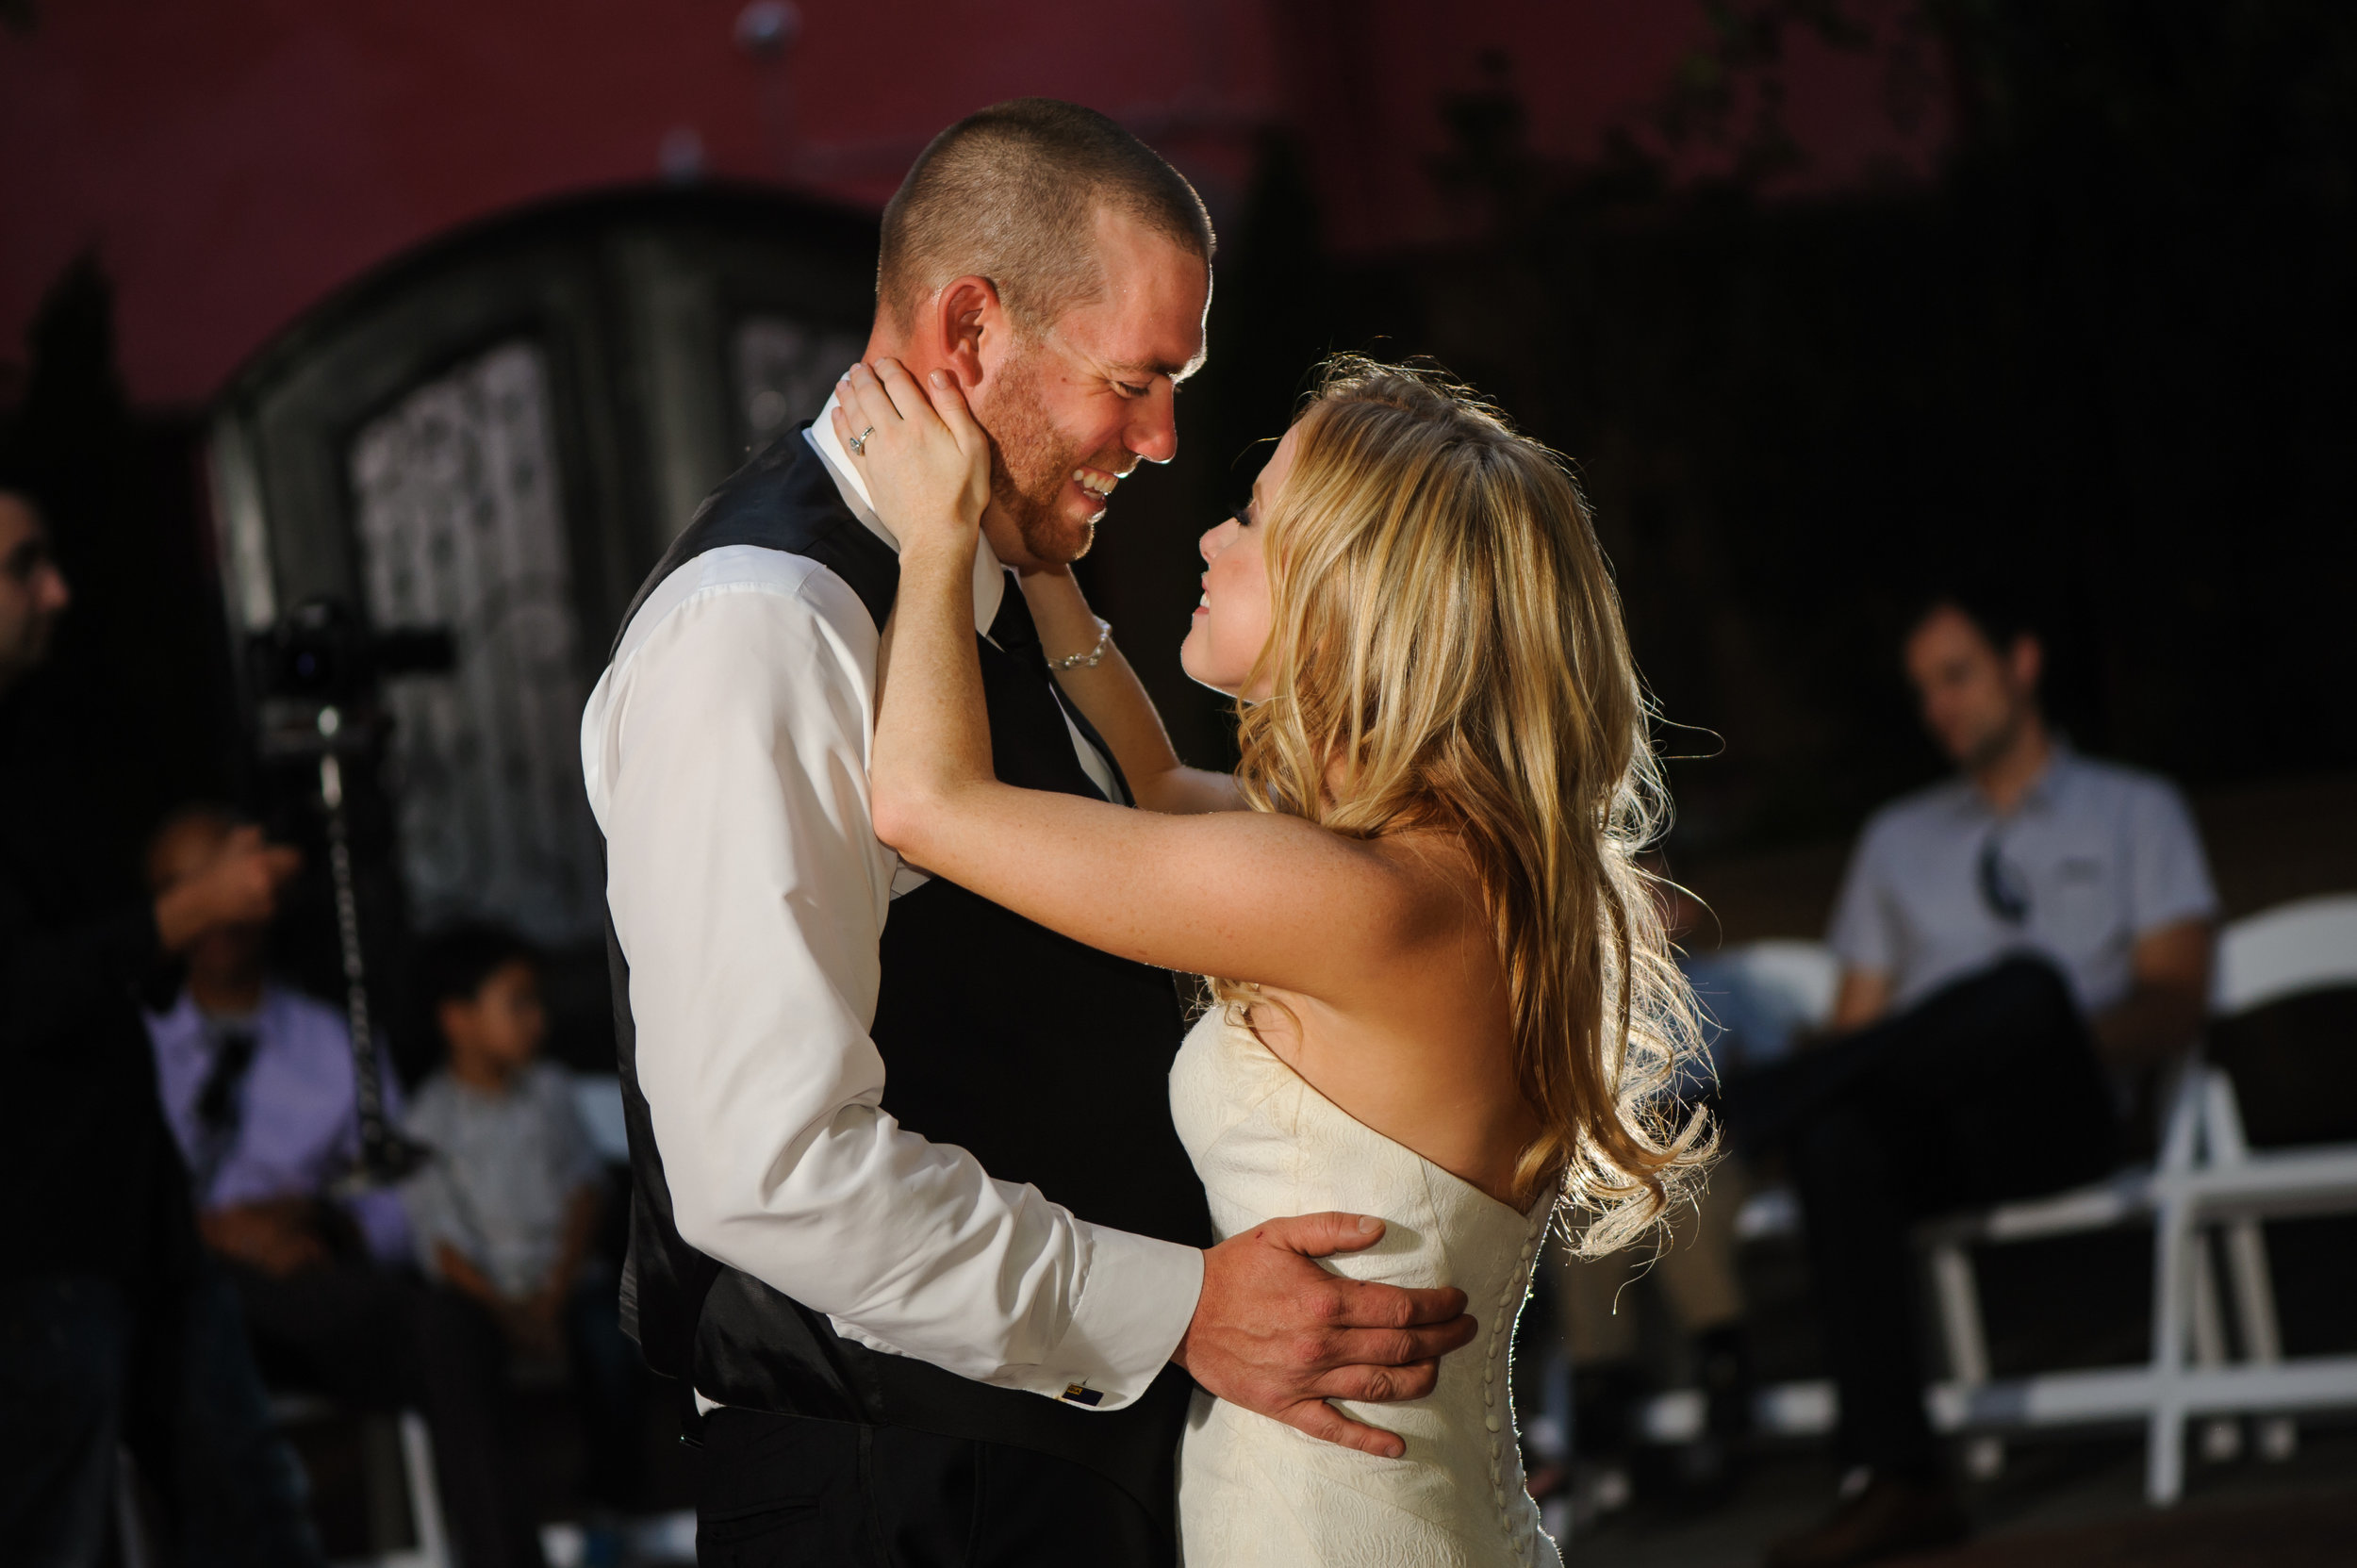 jenelle-brian-001-courtyard-d'oro-old-sacramento-wedding-photographer-katherine-nicole-photography040.JPG